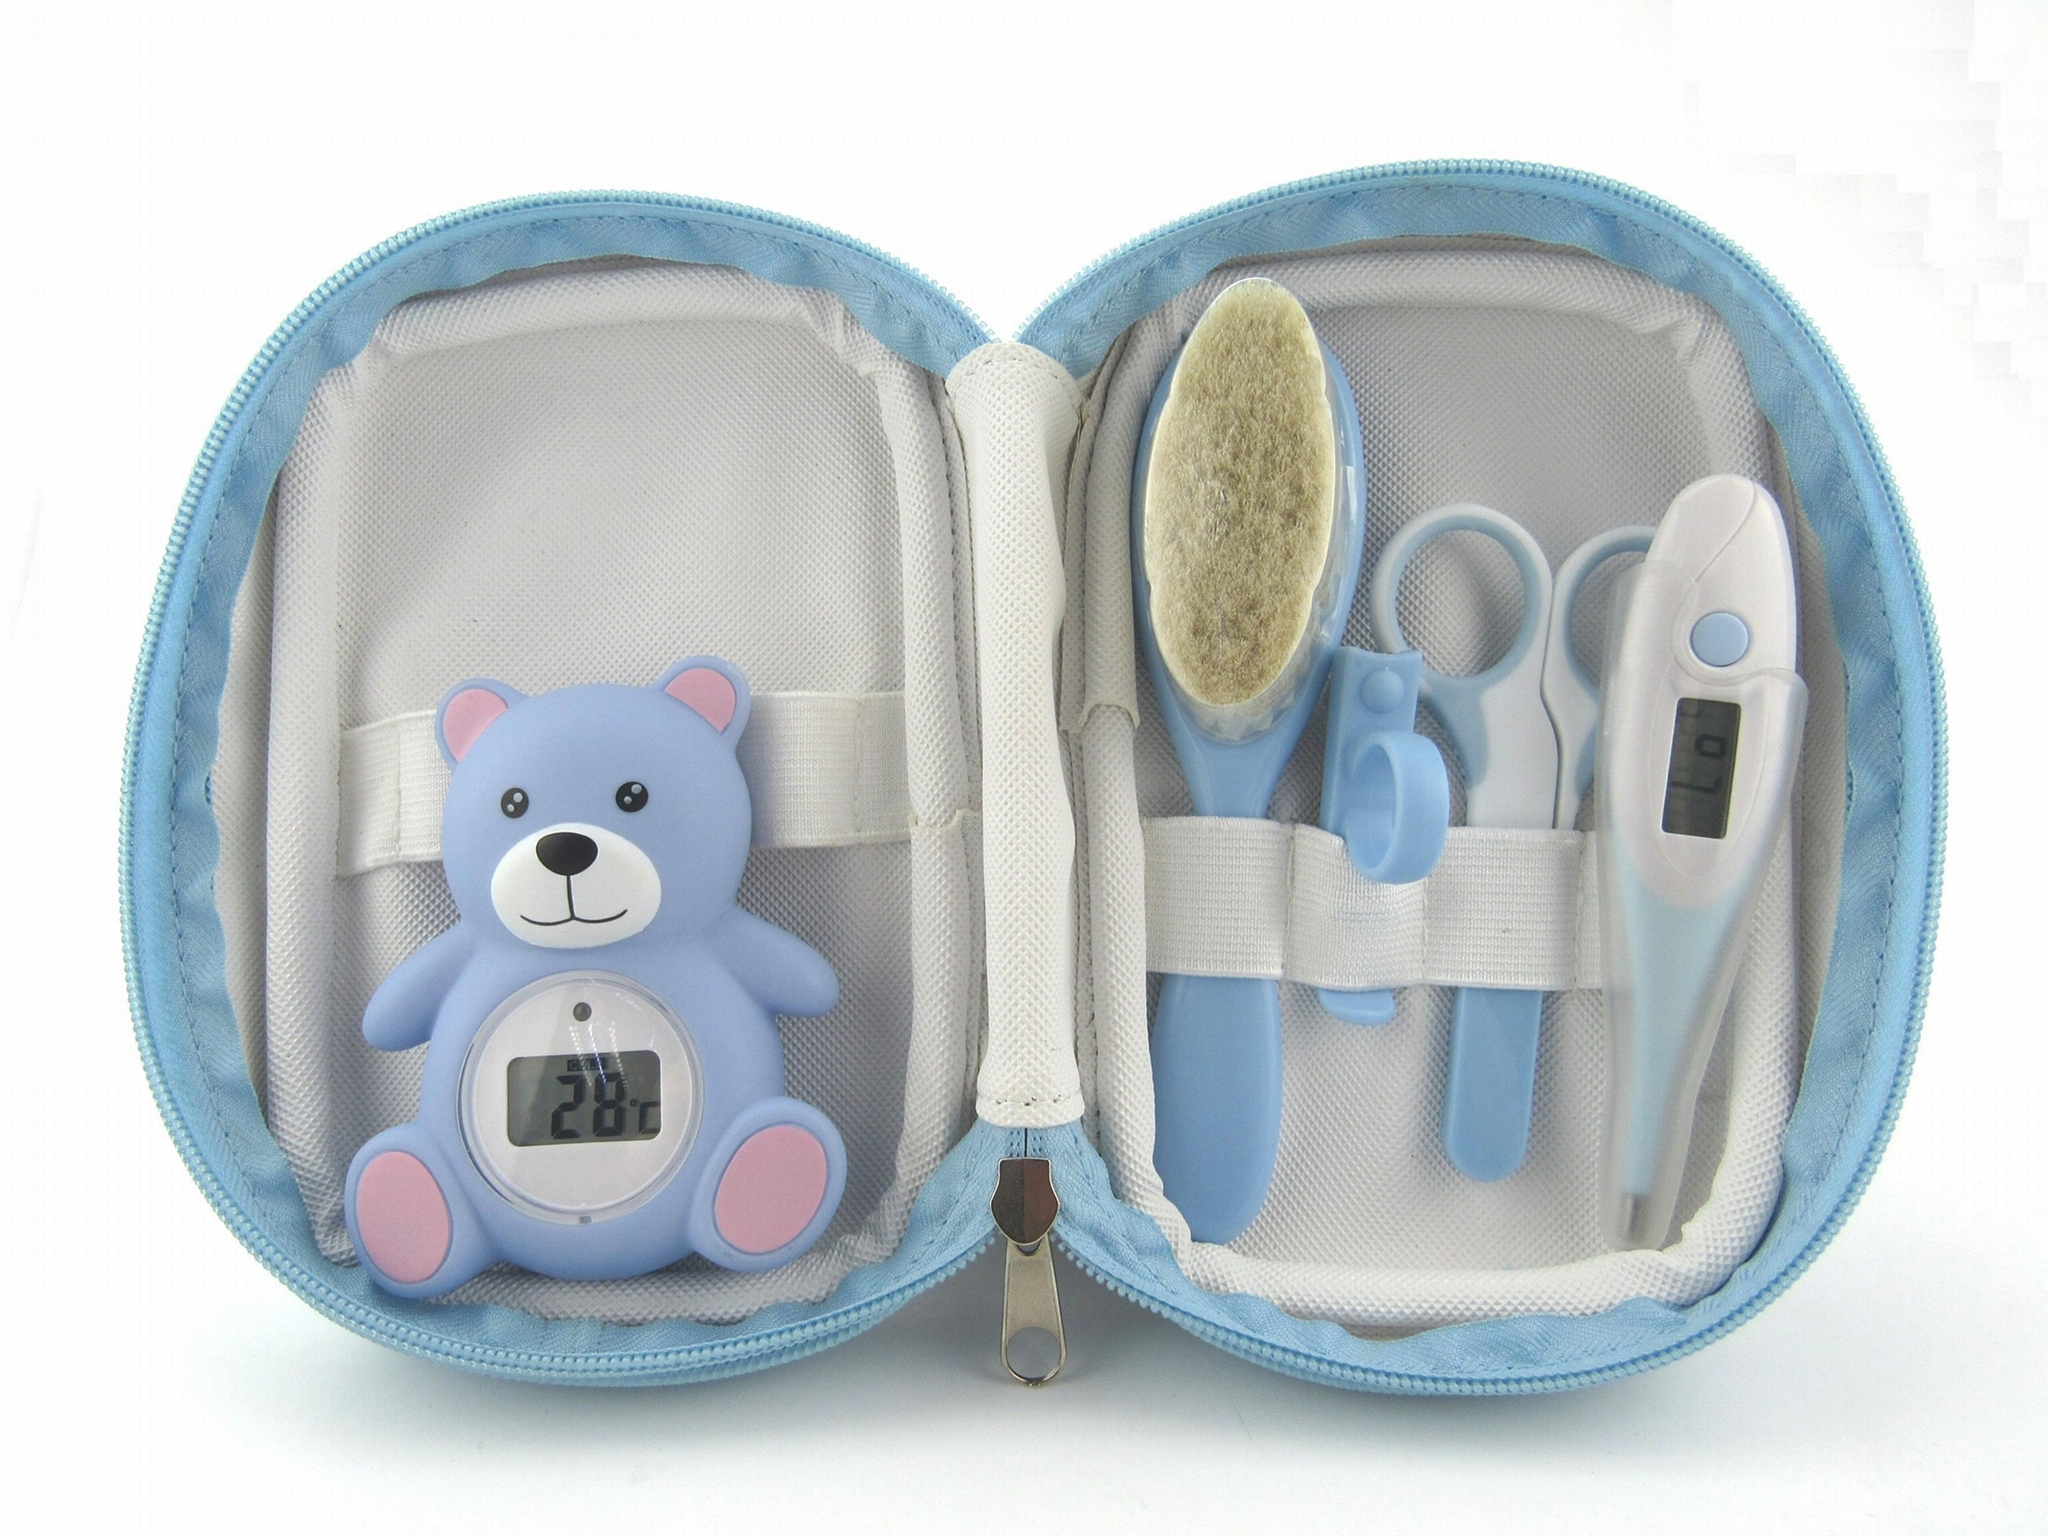 Bear baby thermometer set 1